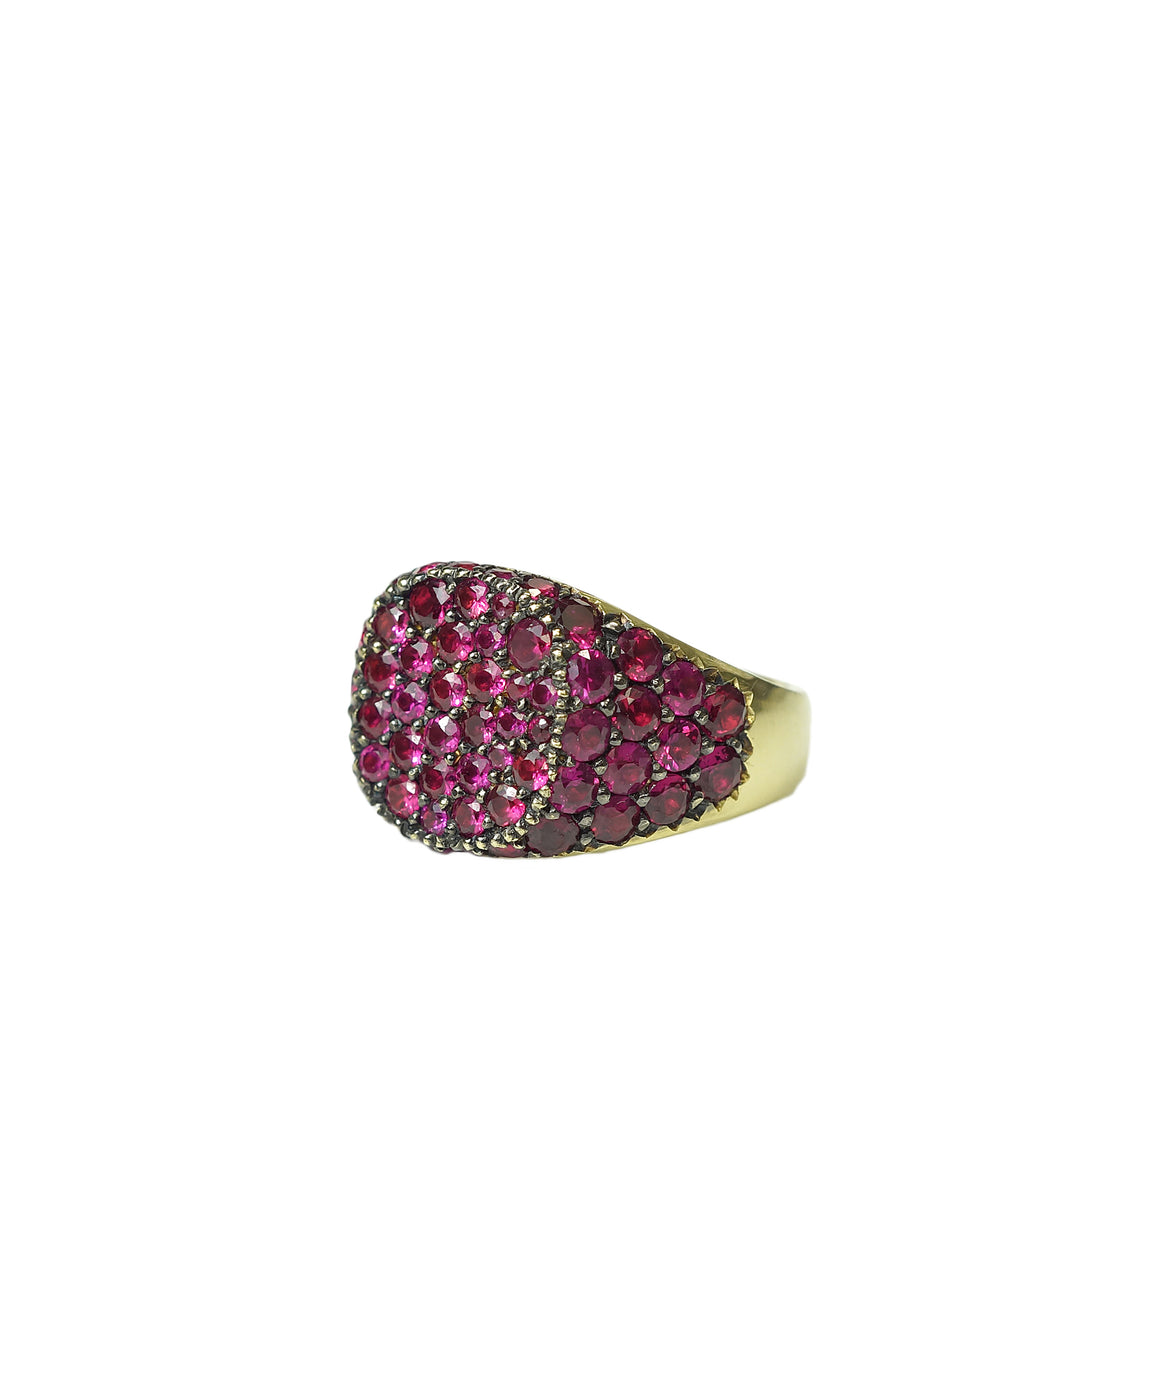 Ruby Signet Ghetto Chick Ring - Lesley Ann Jewels